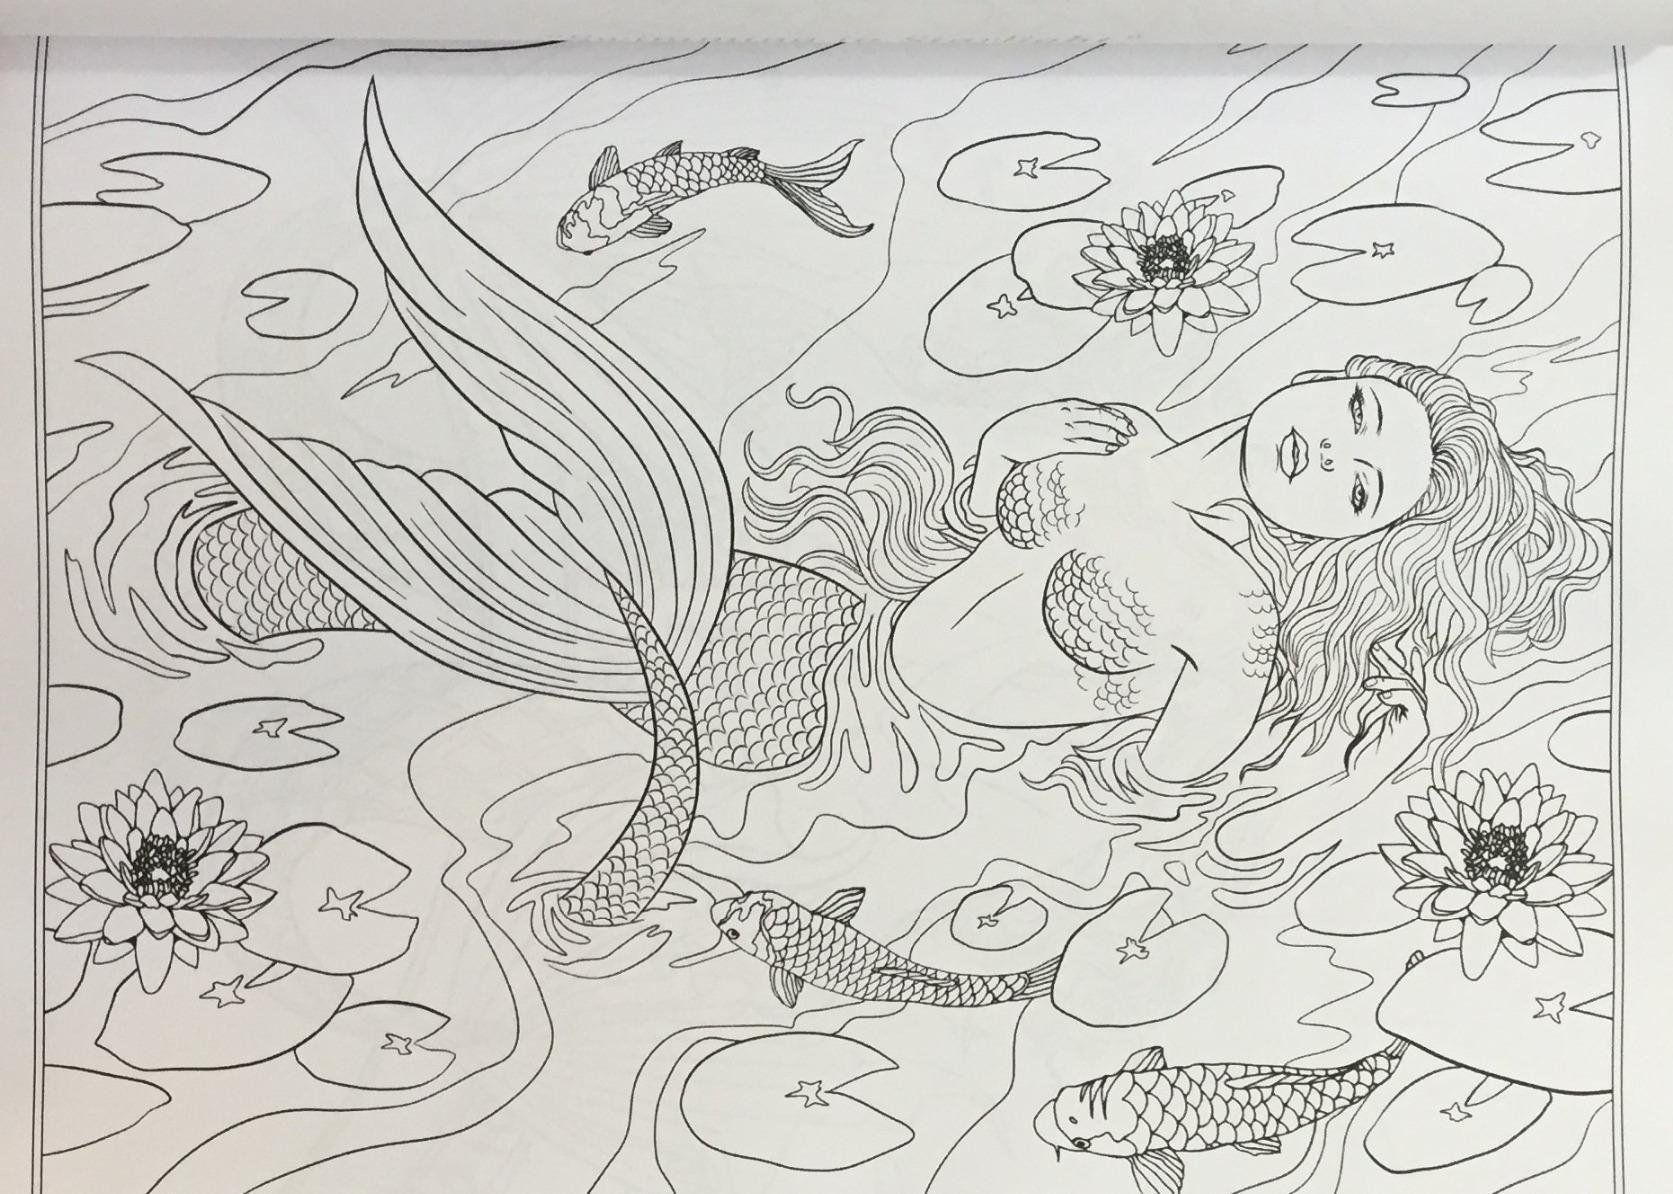 Mythical Mermaids Fantasy Adult Coloring Book Fantasy Coloring